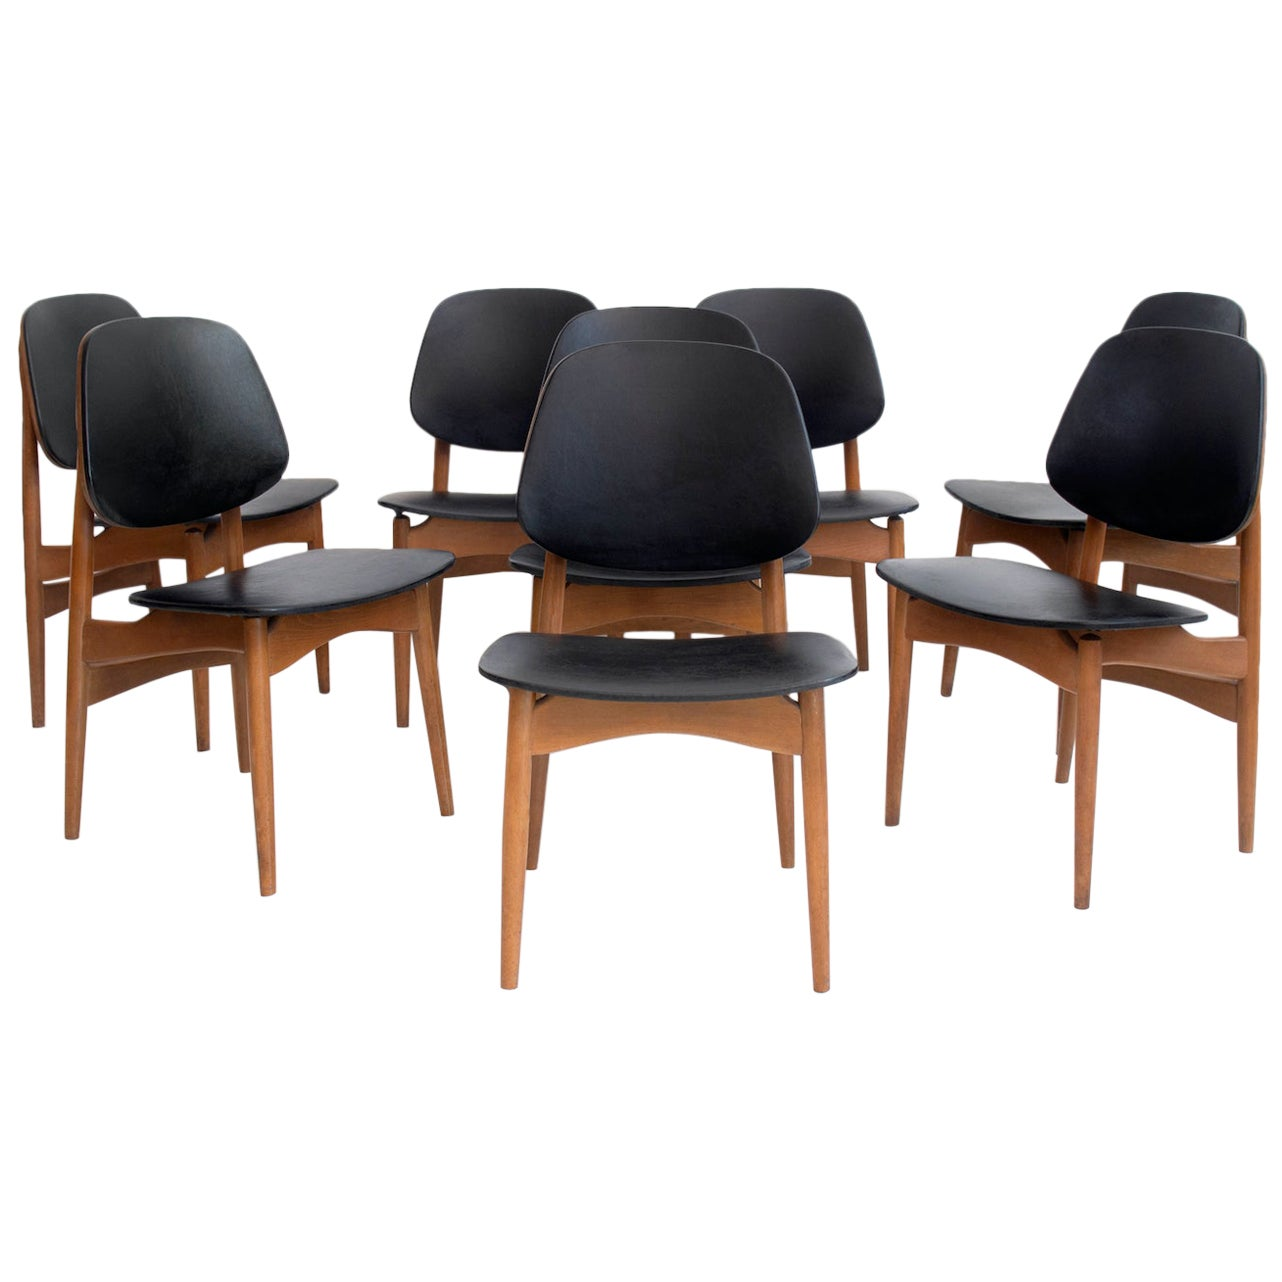 Set of Eight Black Faux Leather and Wood Dining Chairs